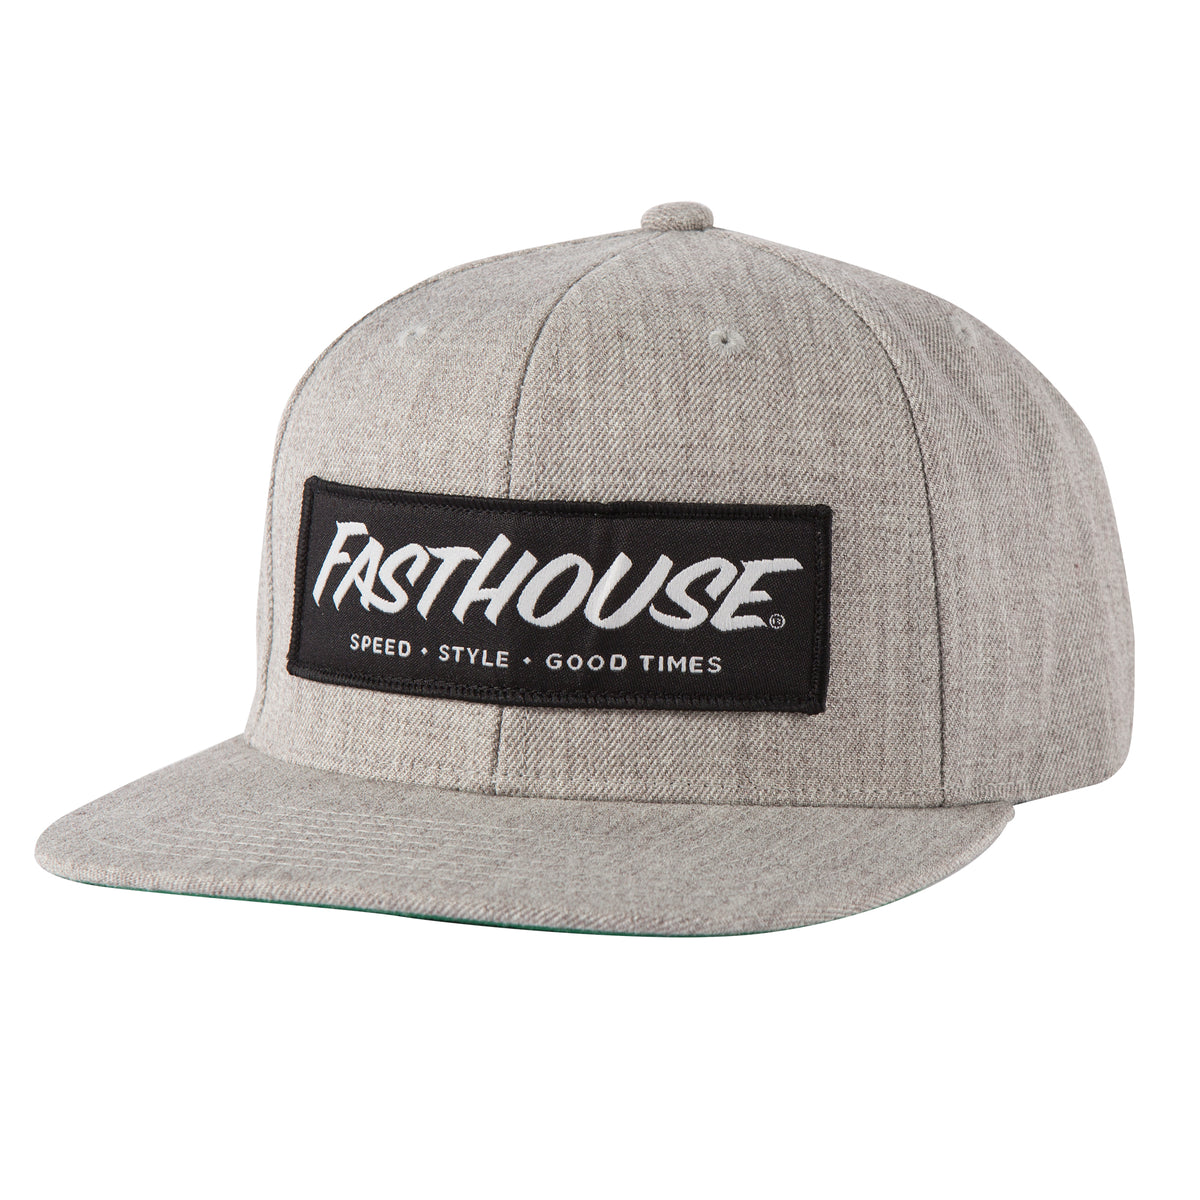 Fasthouse - Speed Style Good Times Hat - Grey